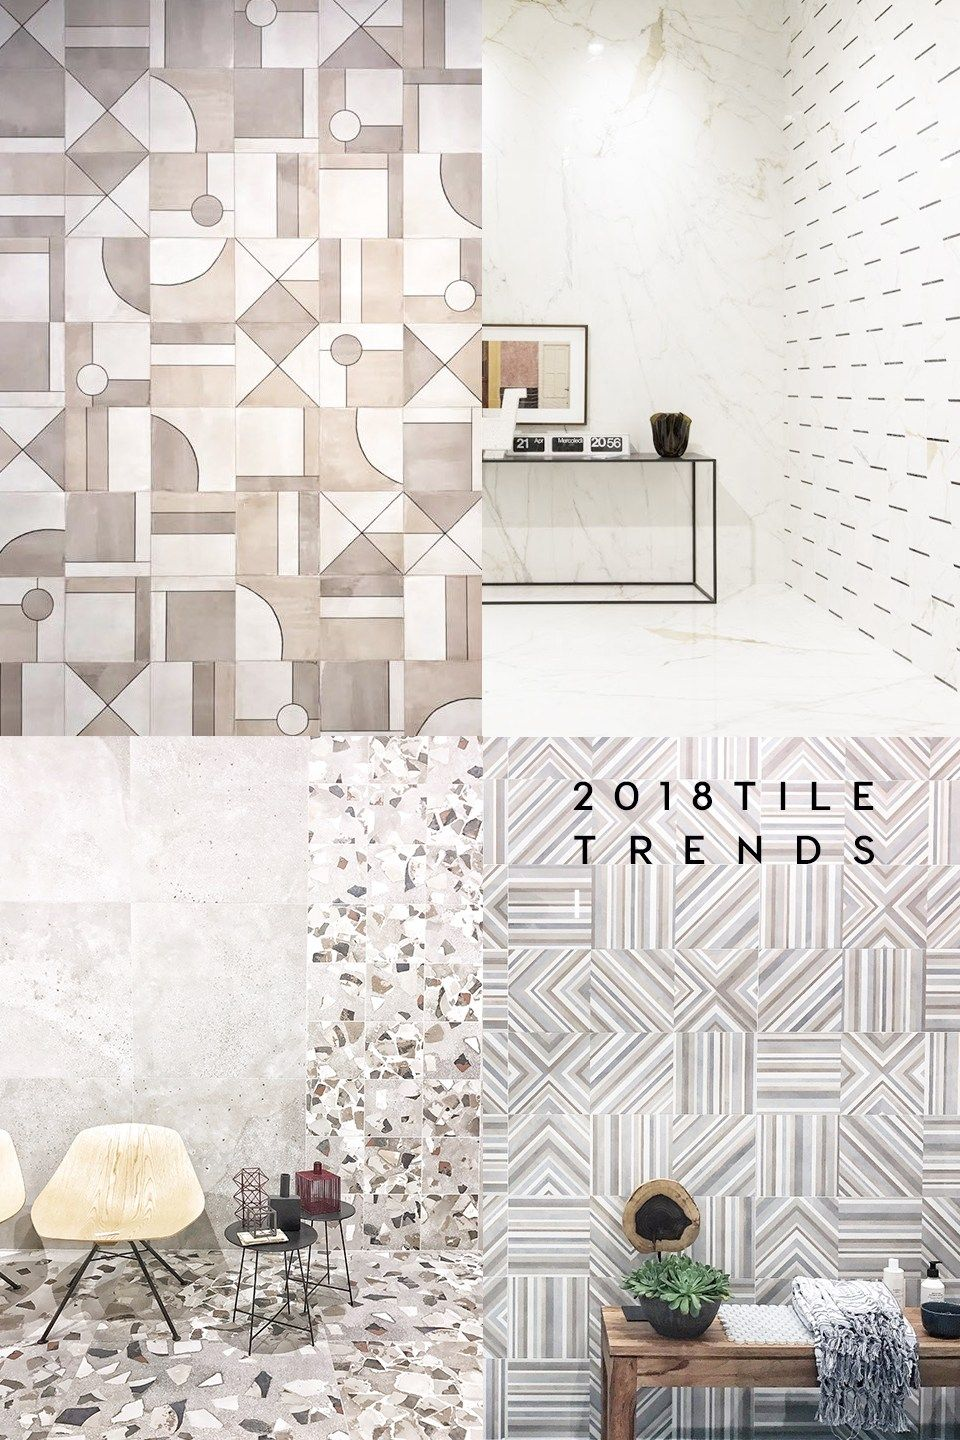 Tile Trends 2018 to Watch Out from the latest Cersaie 2017 fair ...